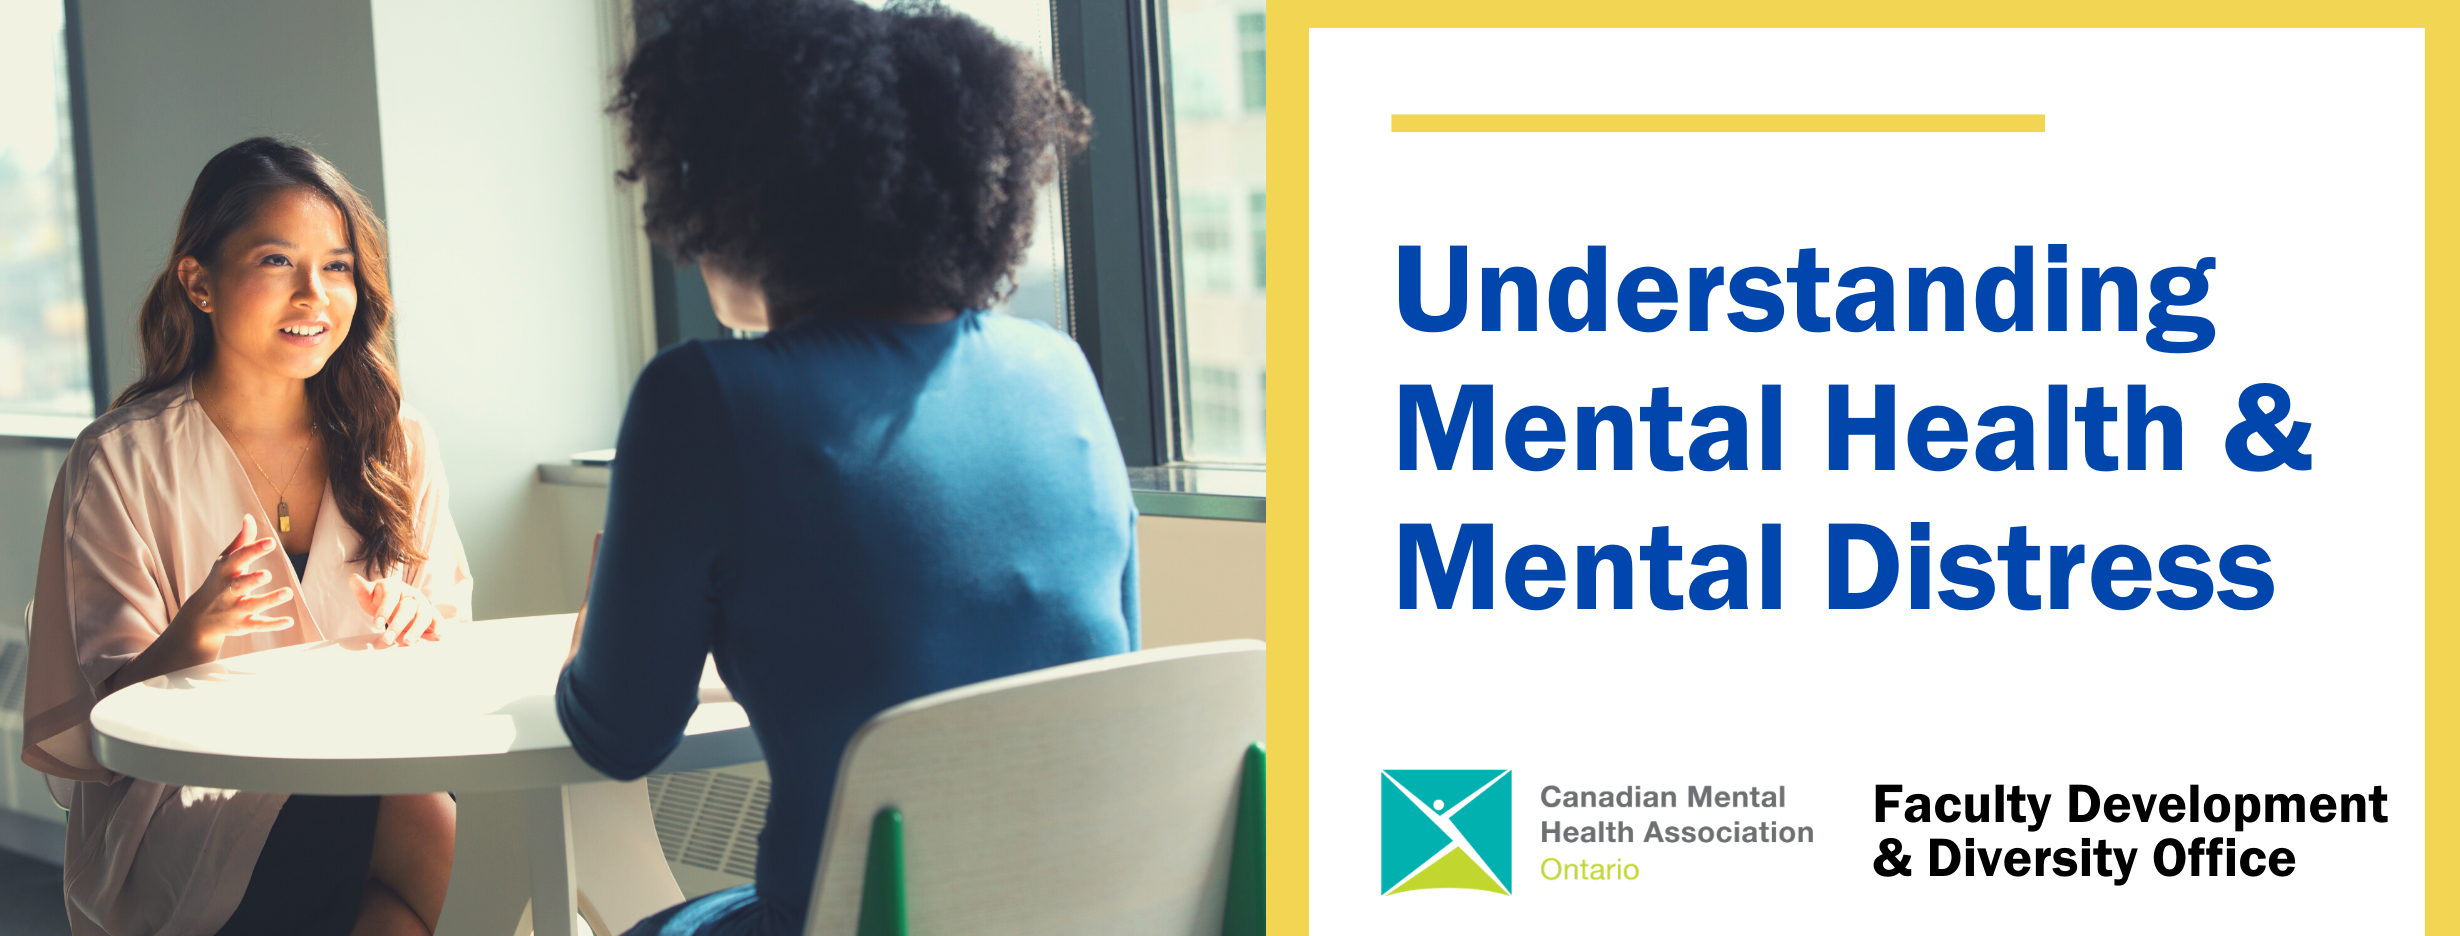 Understanding Mental Health & Mental Distress for Faculty and Staff